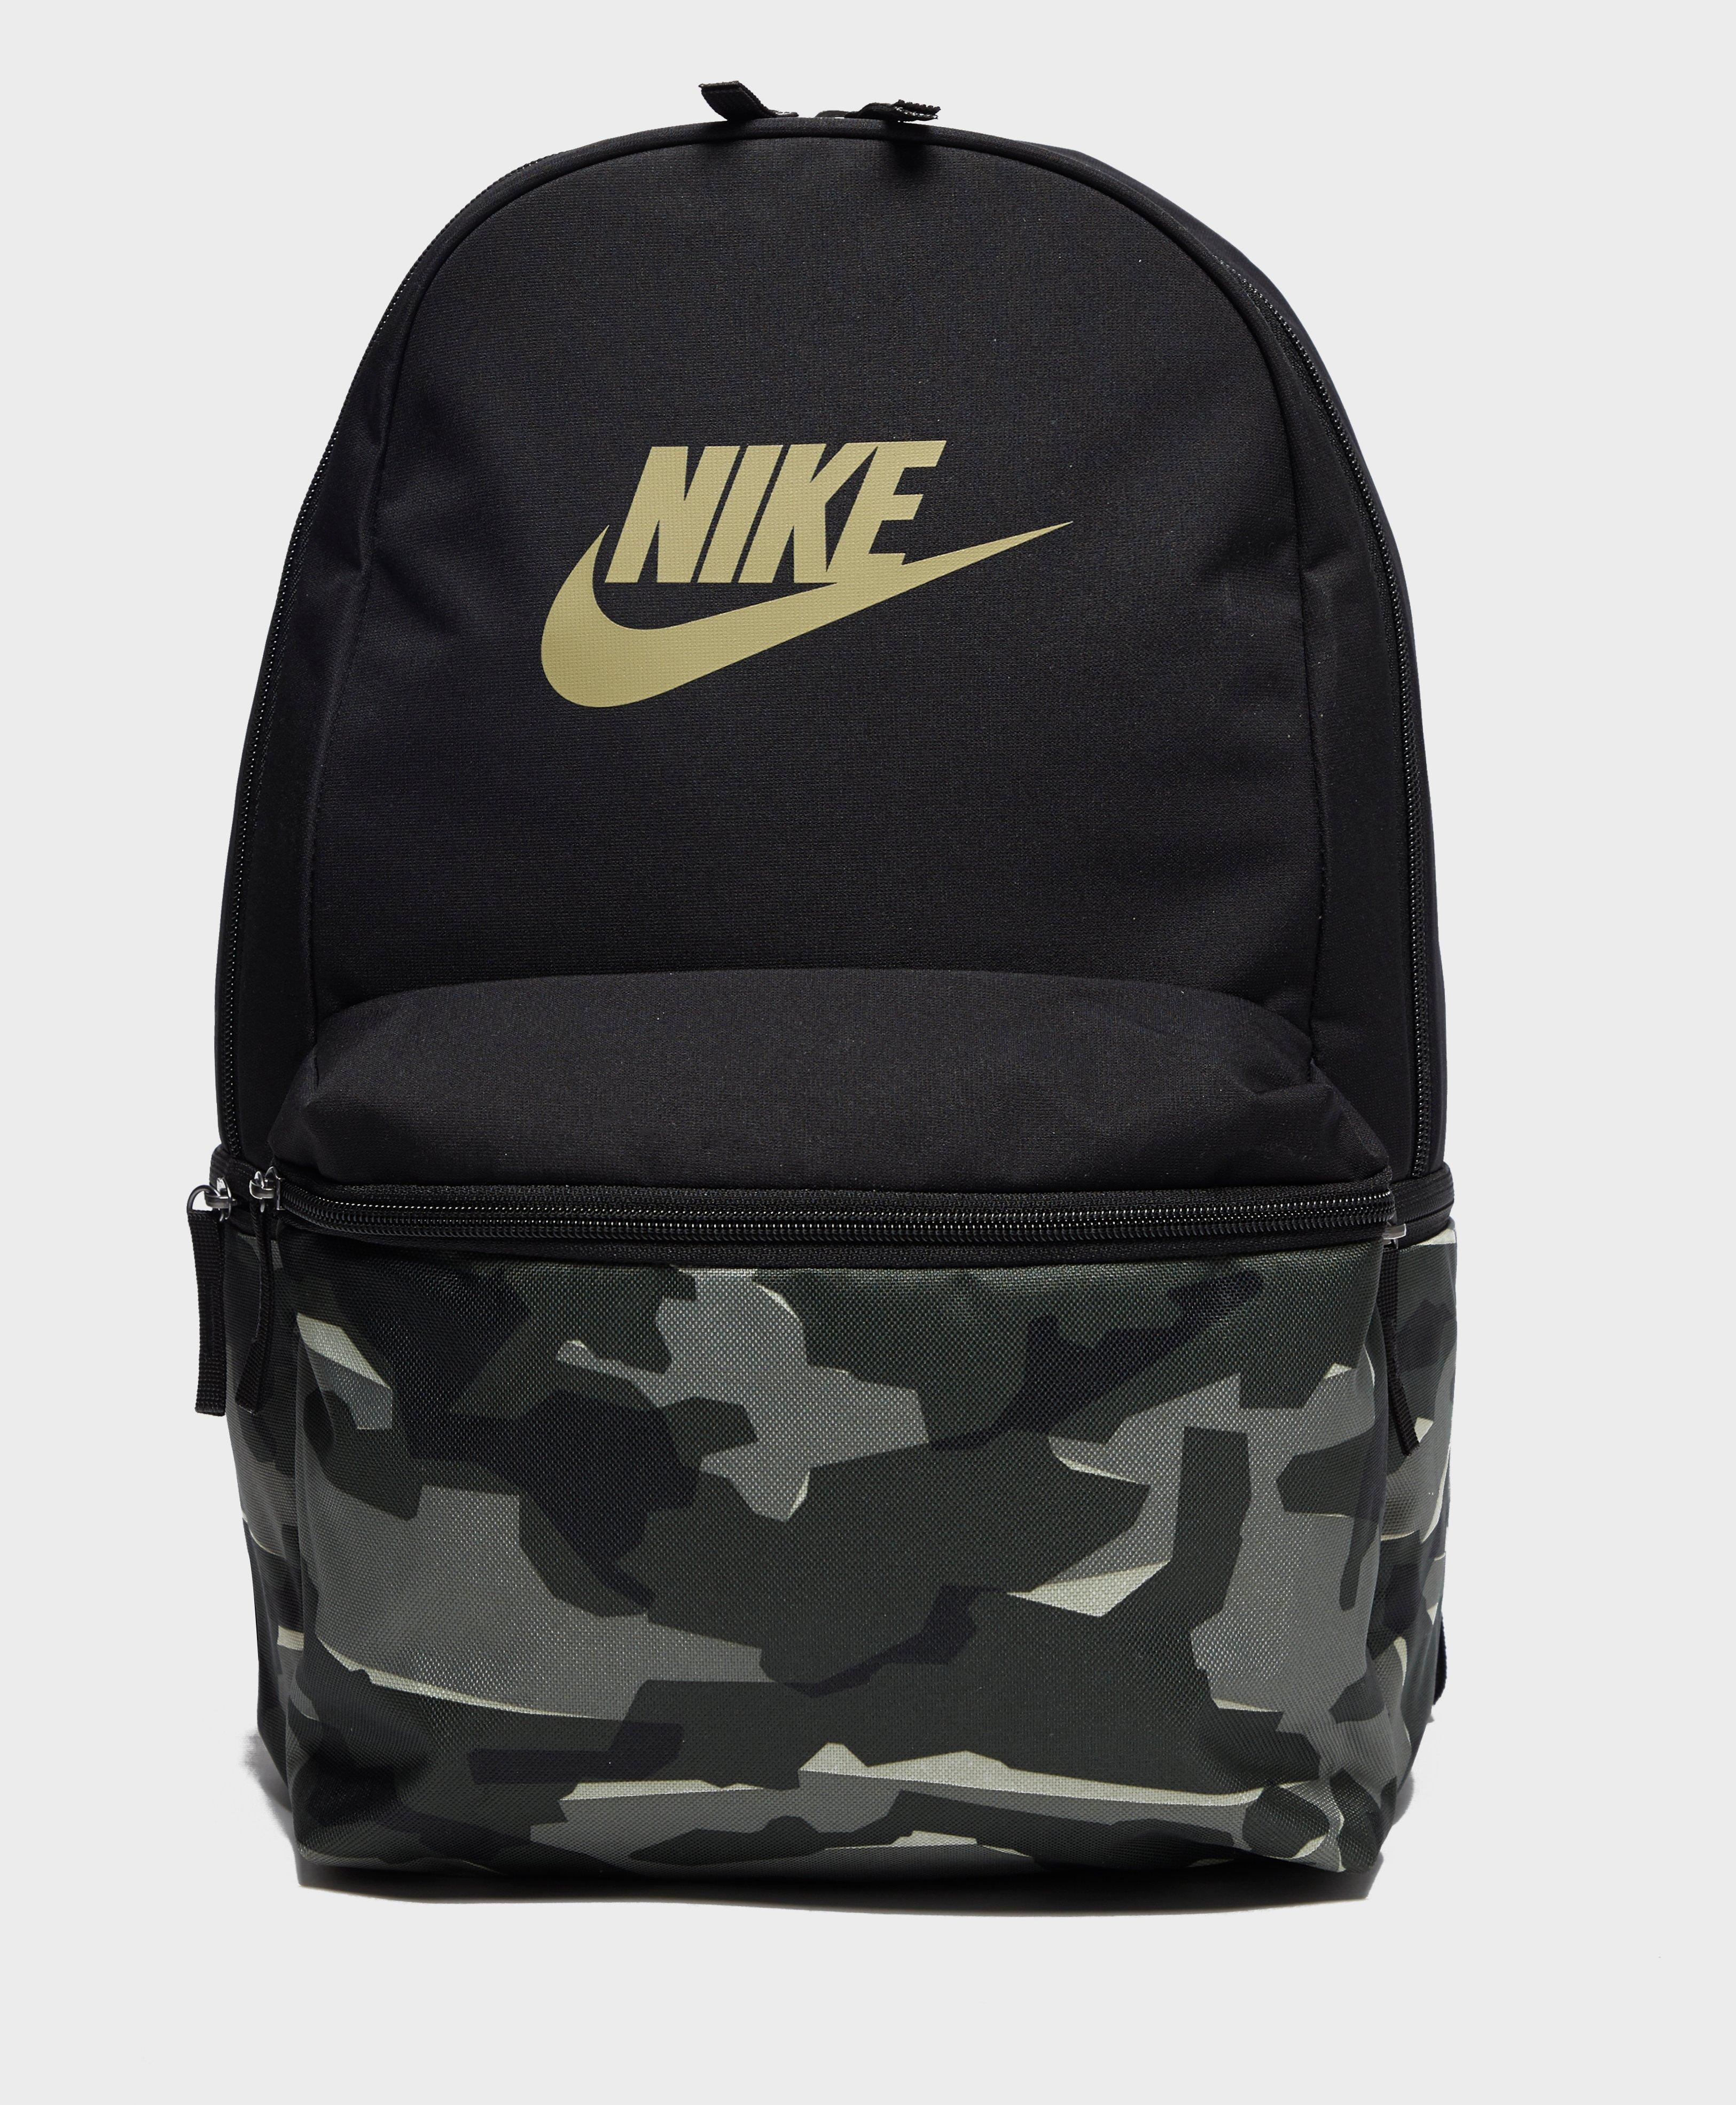 Beste Nike Synthetic Heritage Camo Backpack in Black for Men - Lyst YV-92